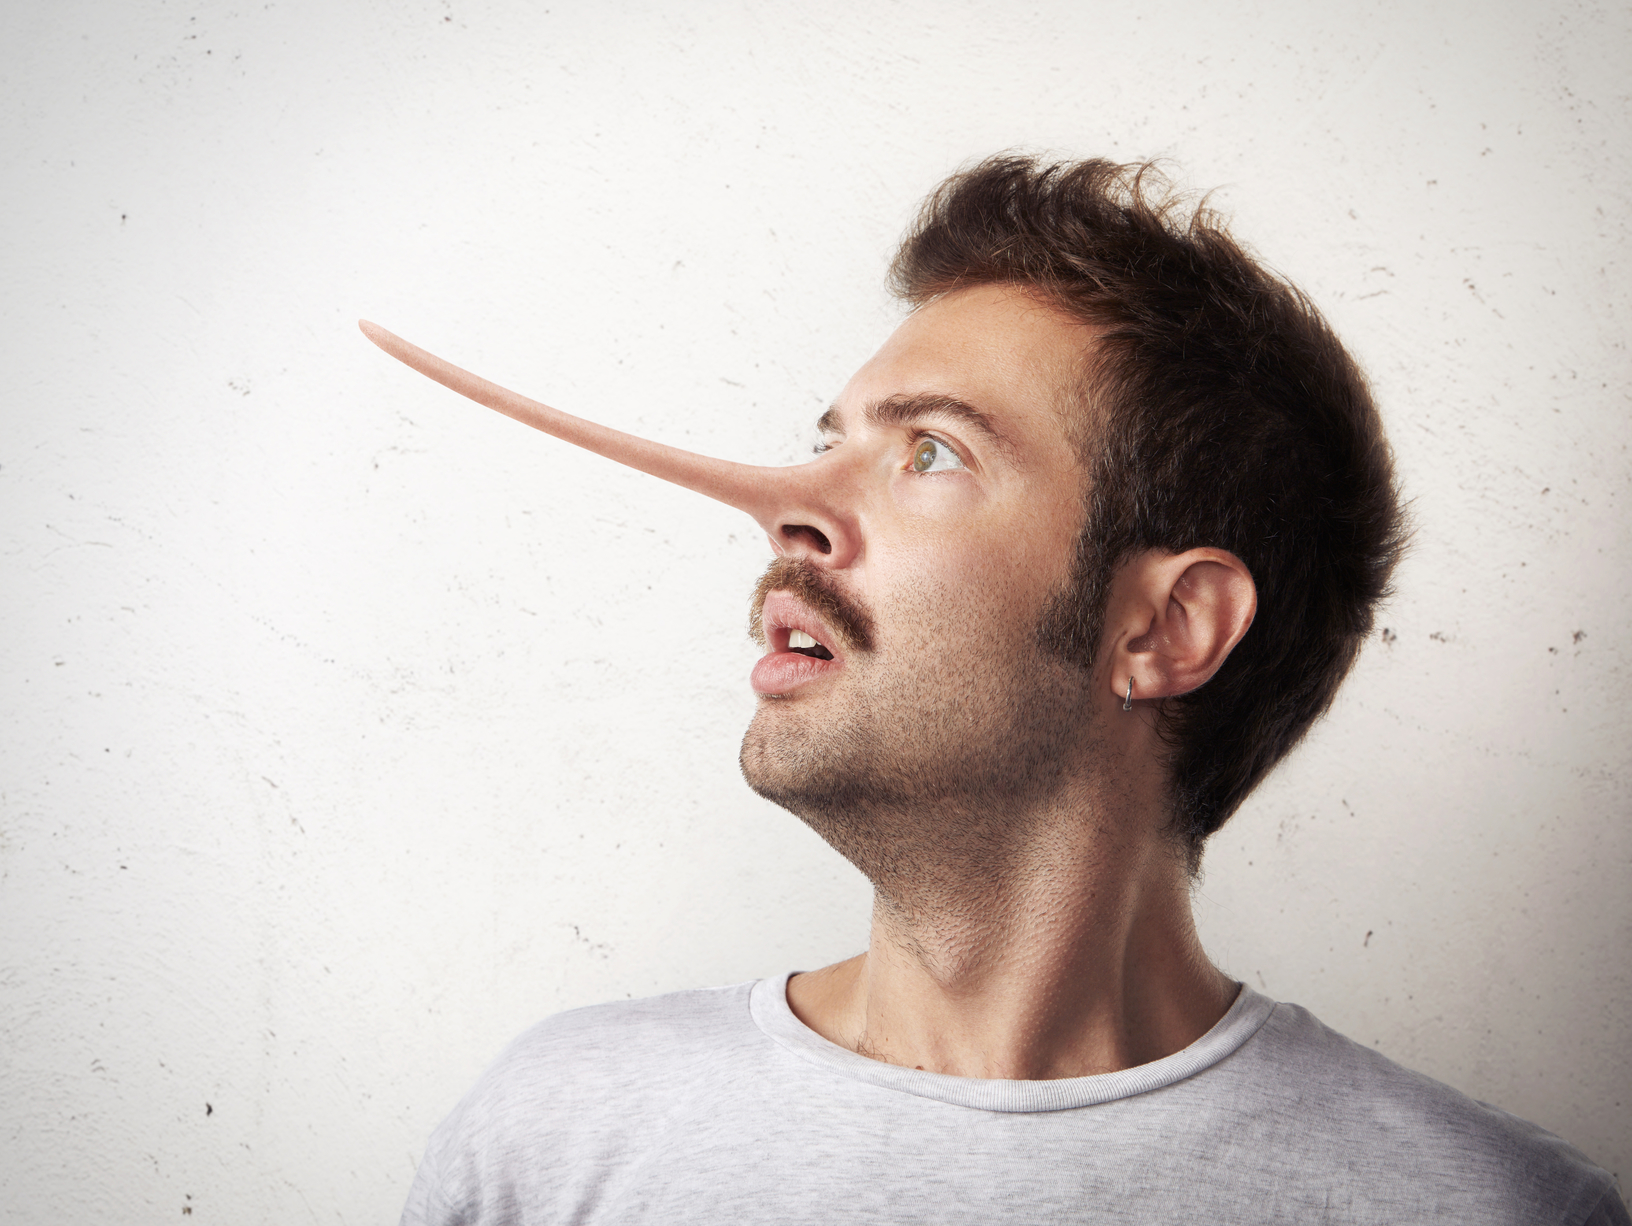 Your Intuition Doesn't Lie - How to Spot a liar - Michele Knight